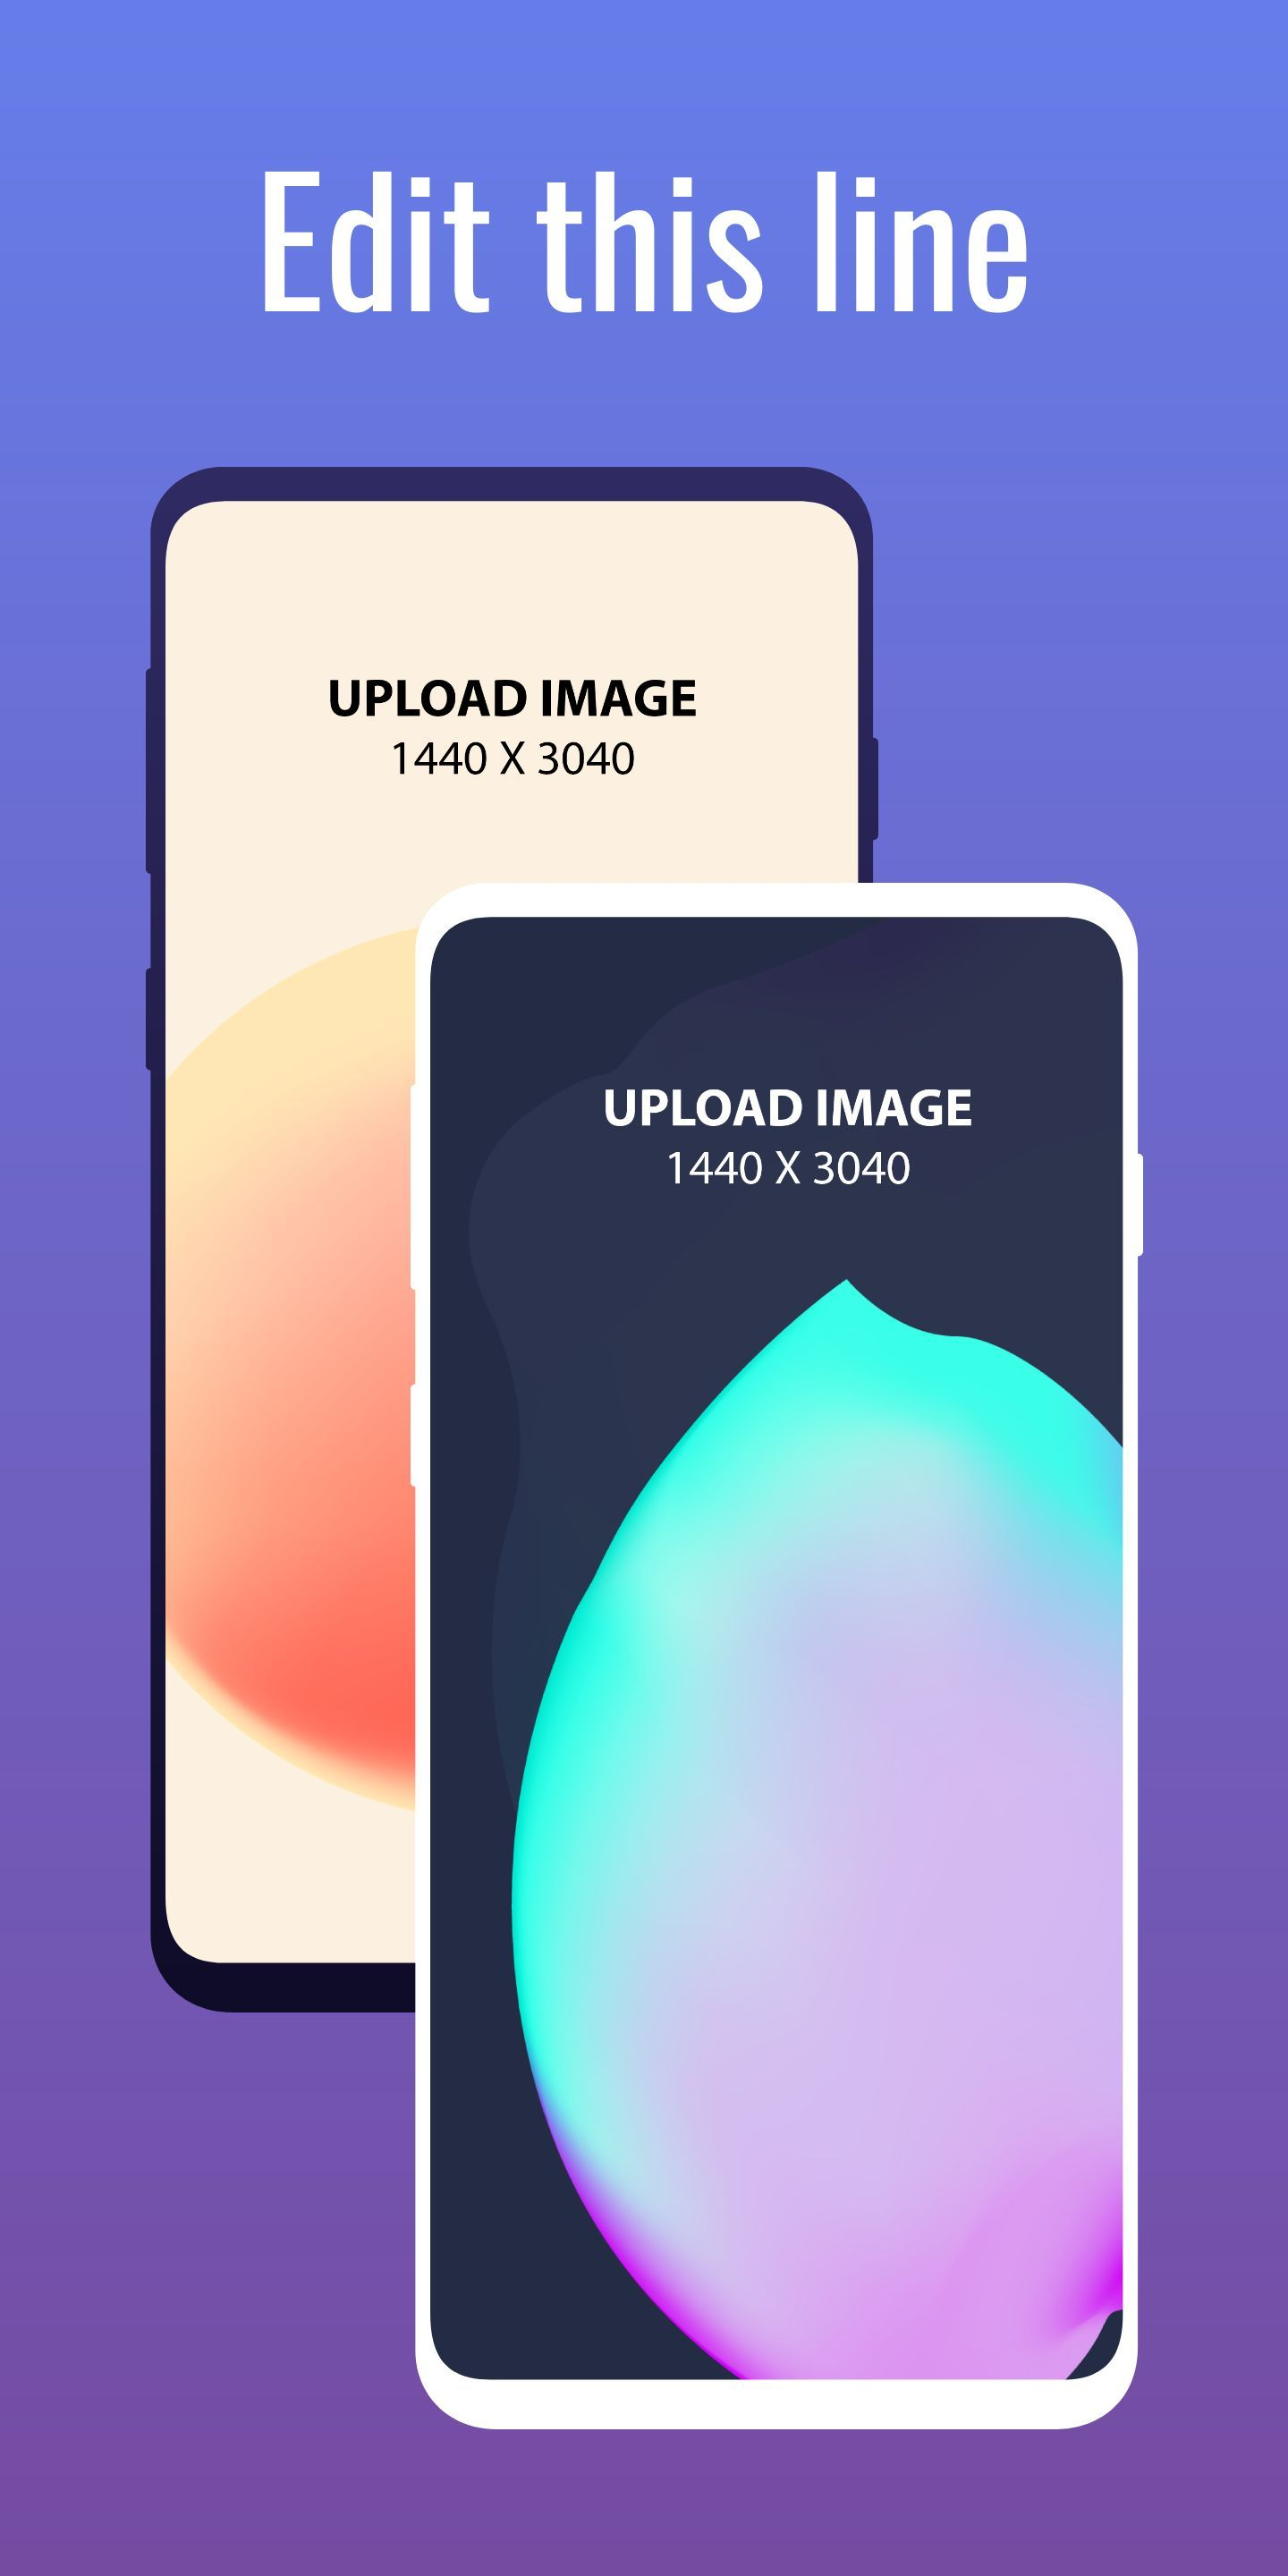 Samsung S10 Screenshot 6 template. Quickly edit text, colors, images, and more for free.